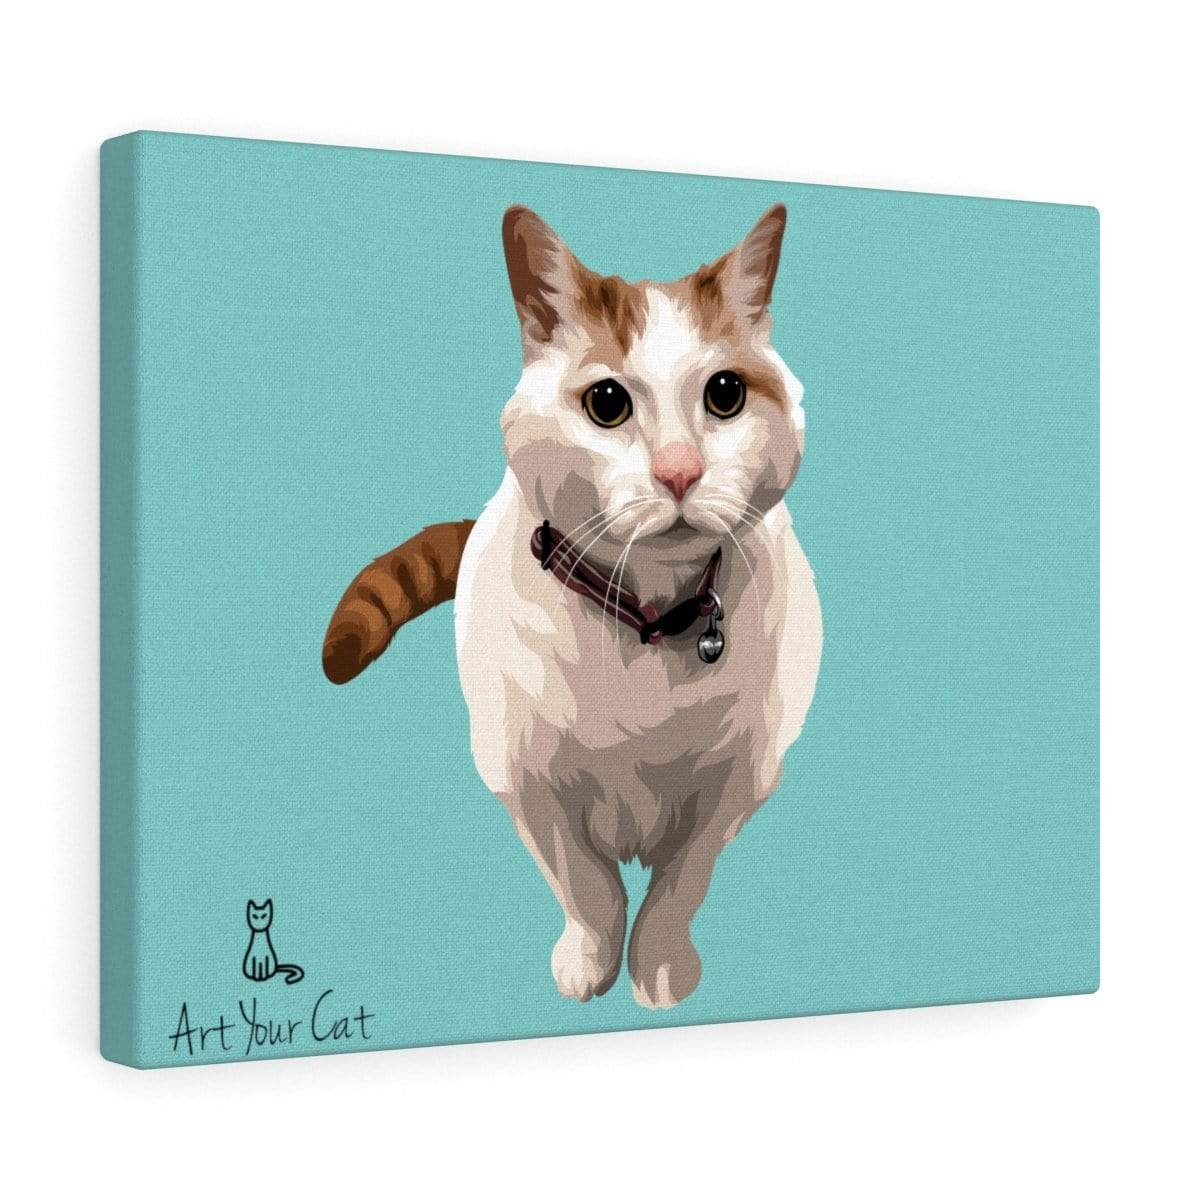 Art Your Cat YOUR CAT - Canvas Gallery Wraps